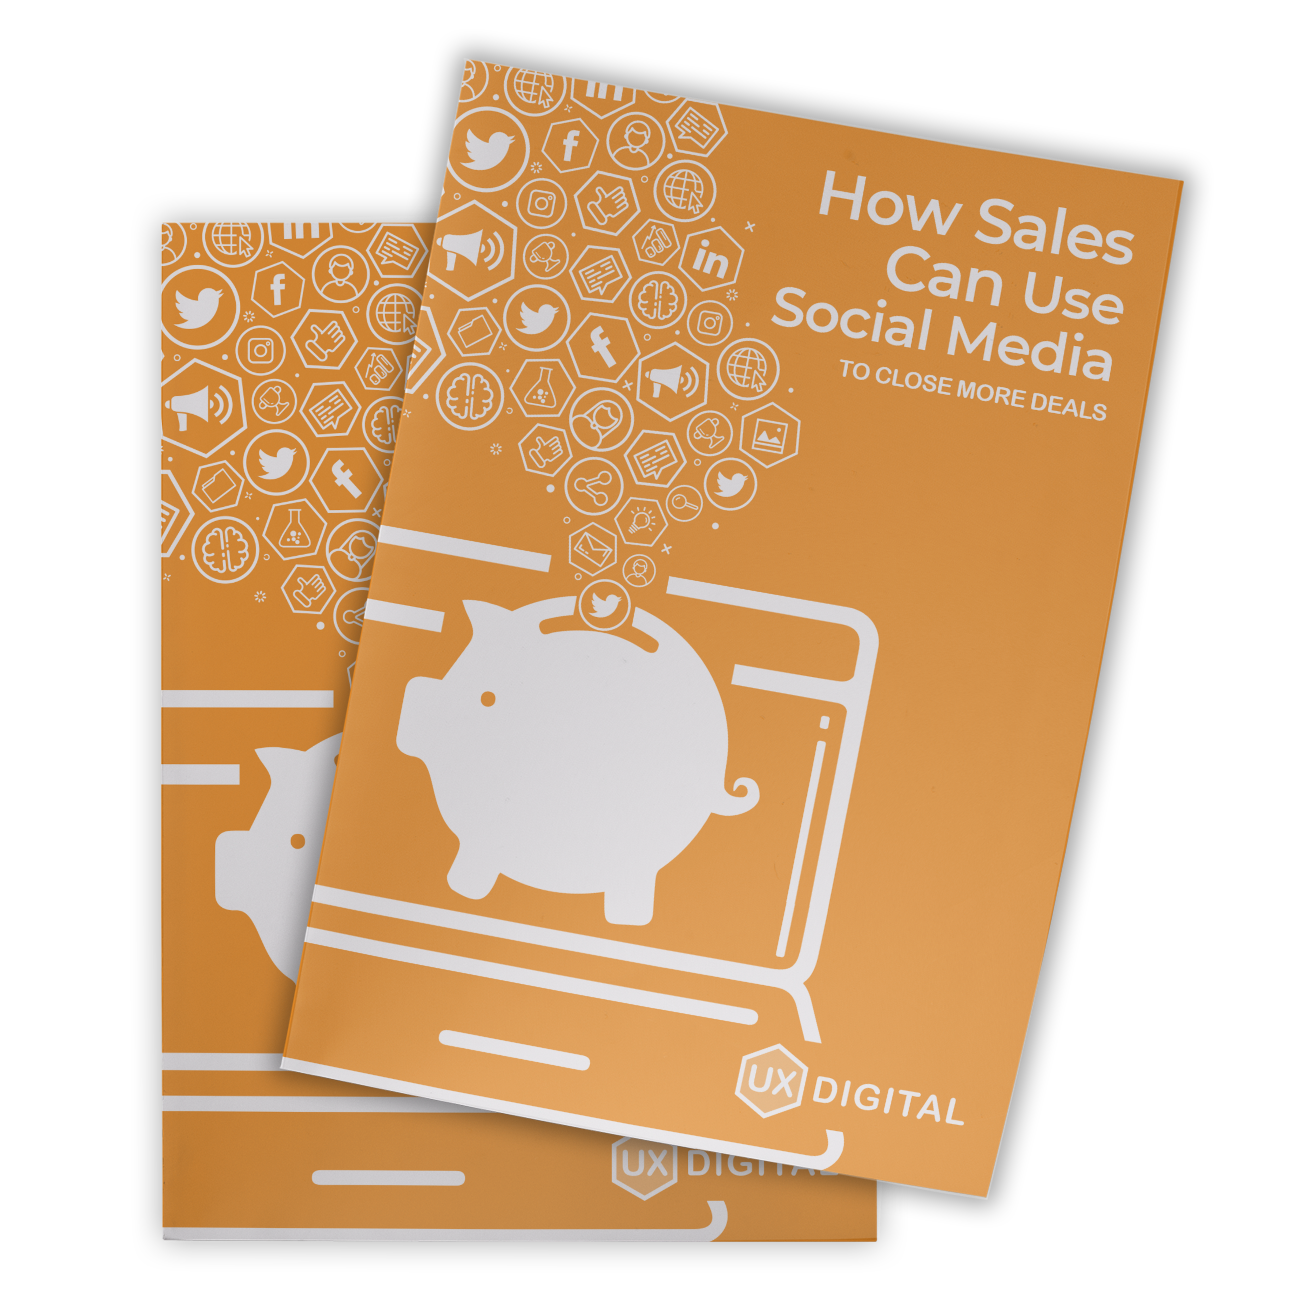 How-Sales-can-use-Social-Media-eGuide-M